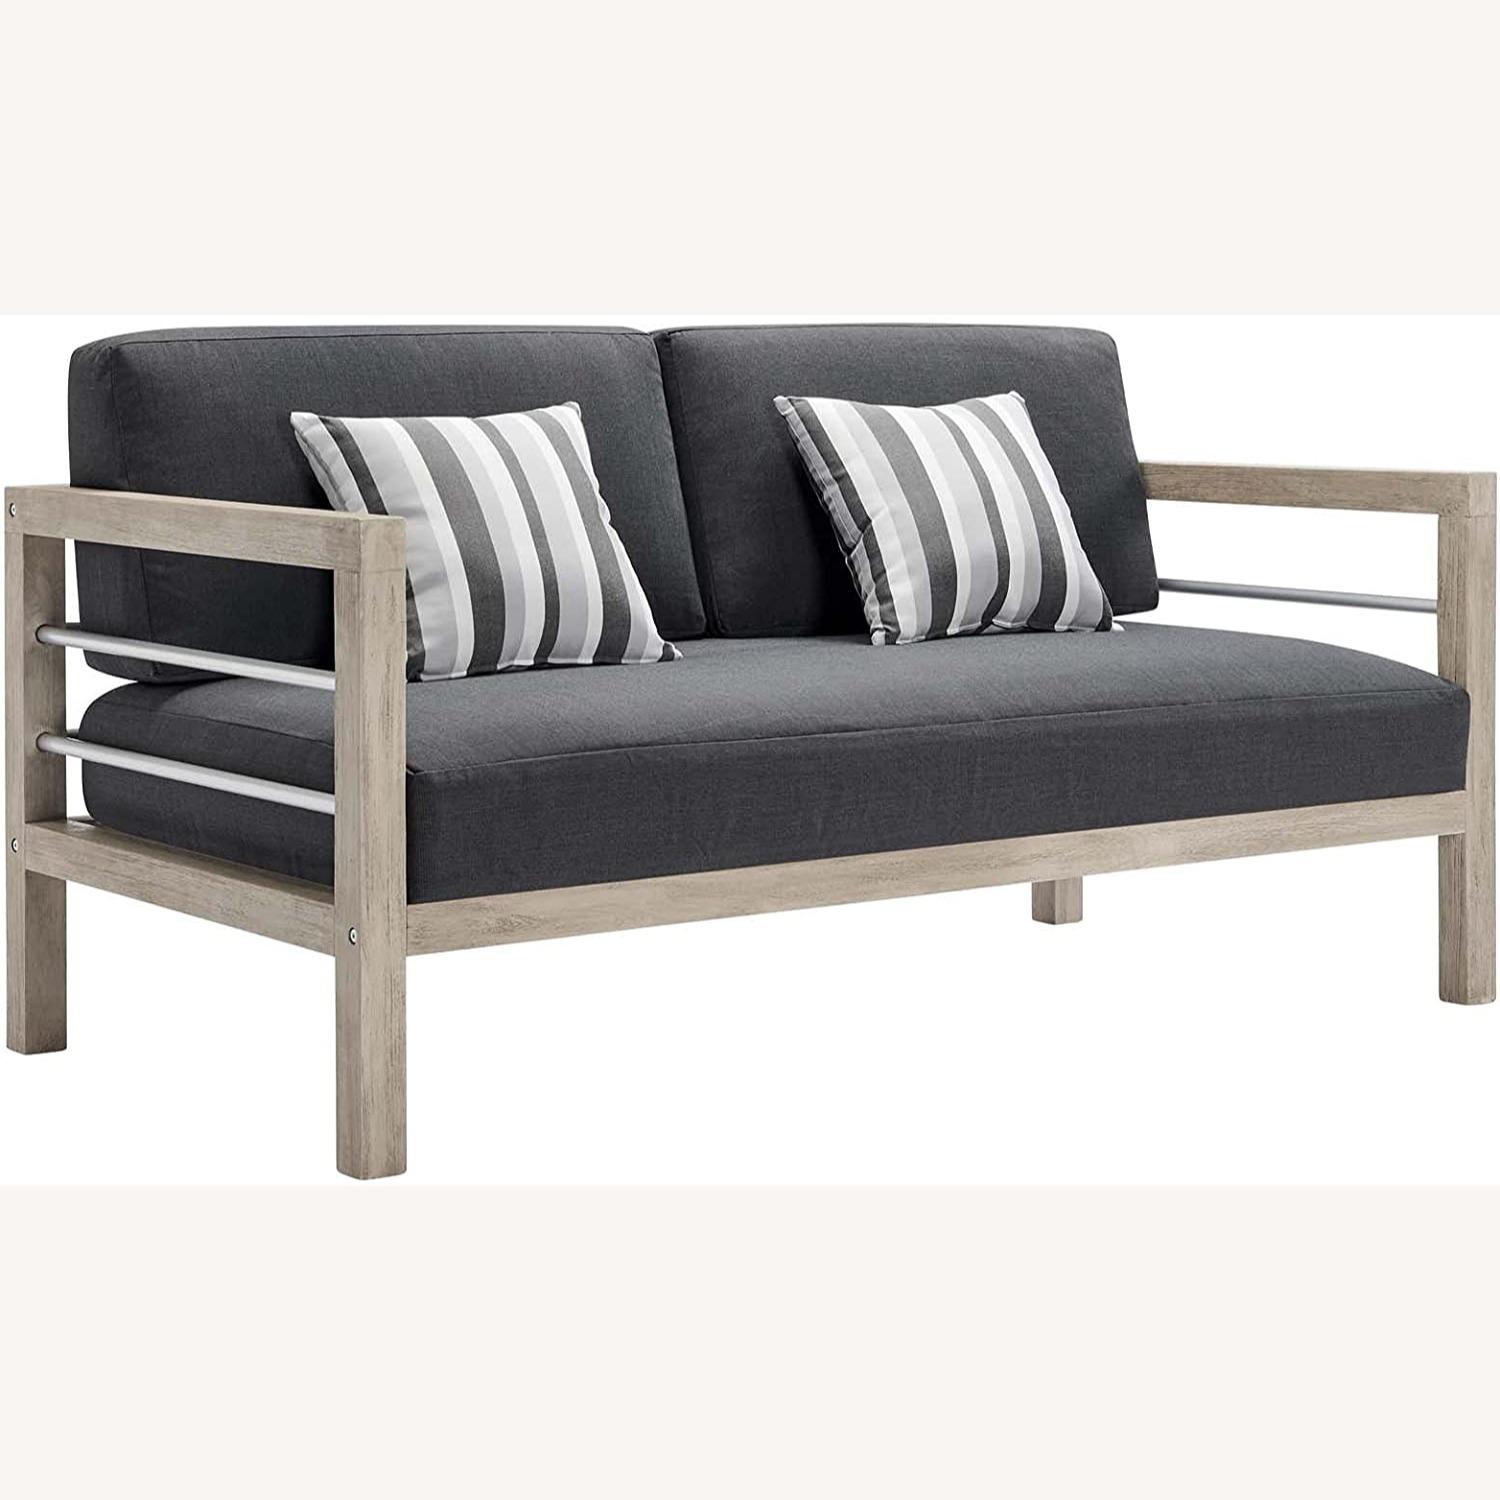 Outdoor Patio Set In Light Gray Wood Finish - image-1